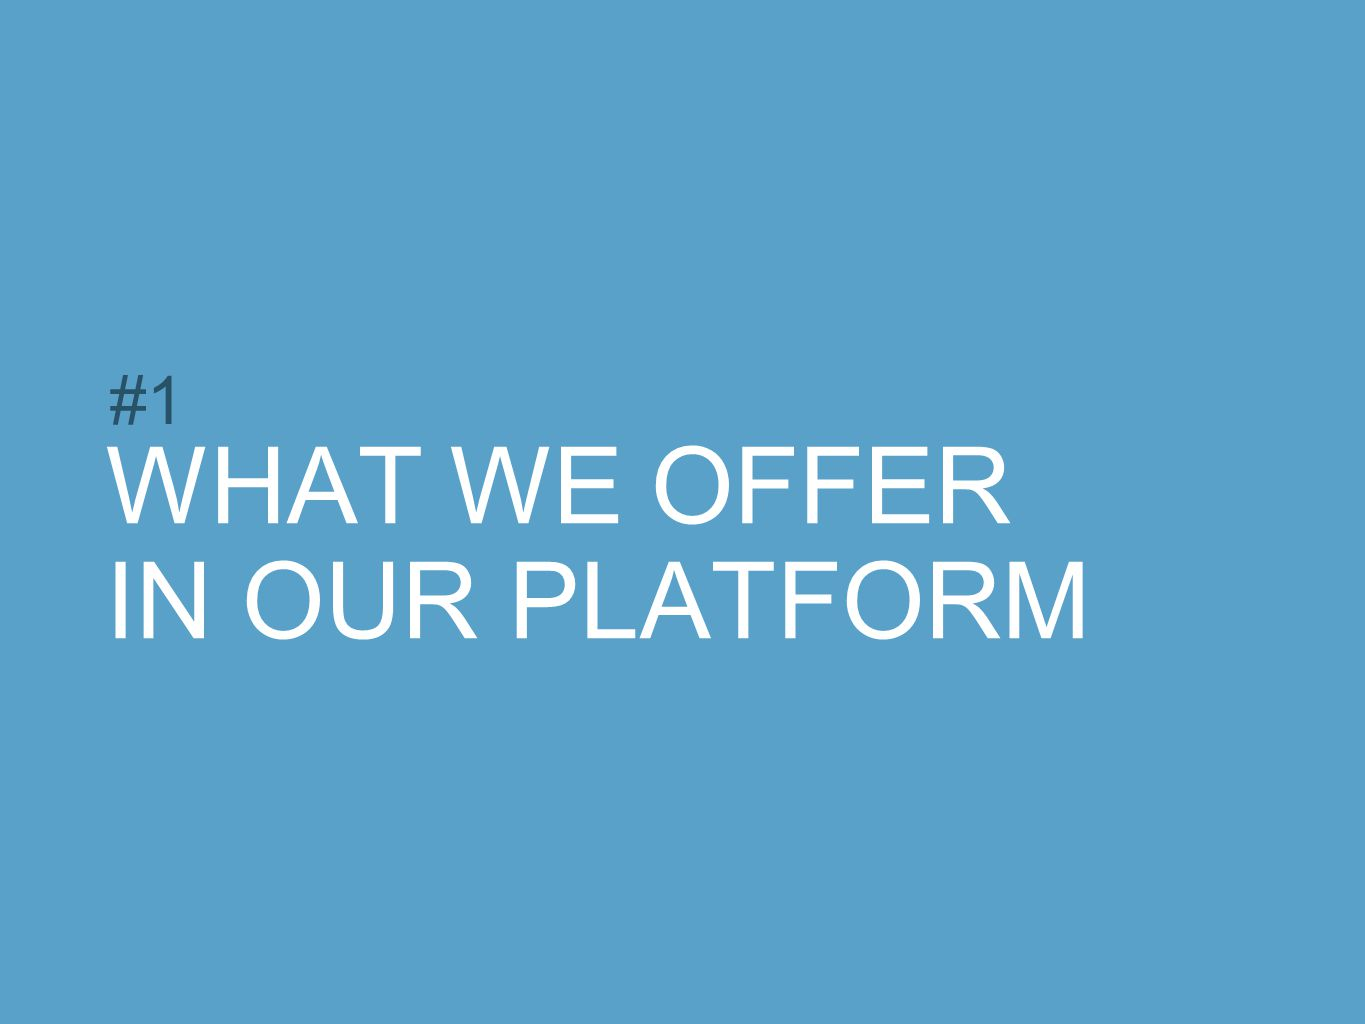 WHAT WE OFFER IN OUR PLATFORM